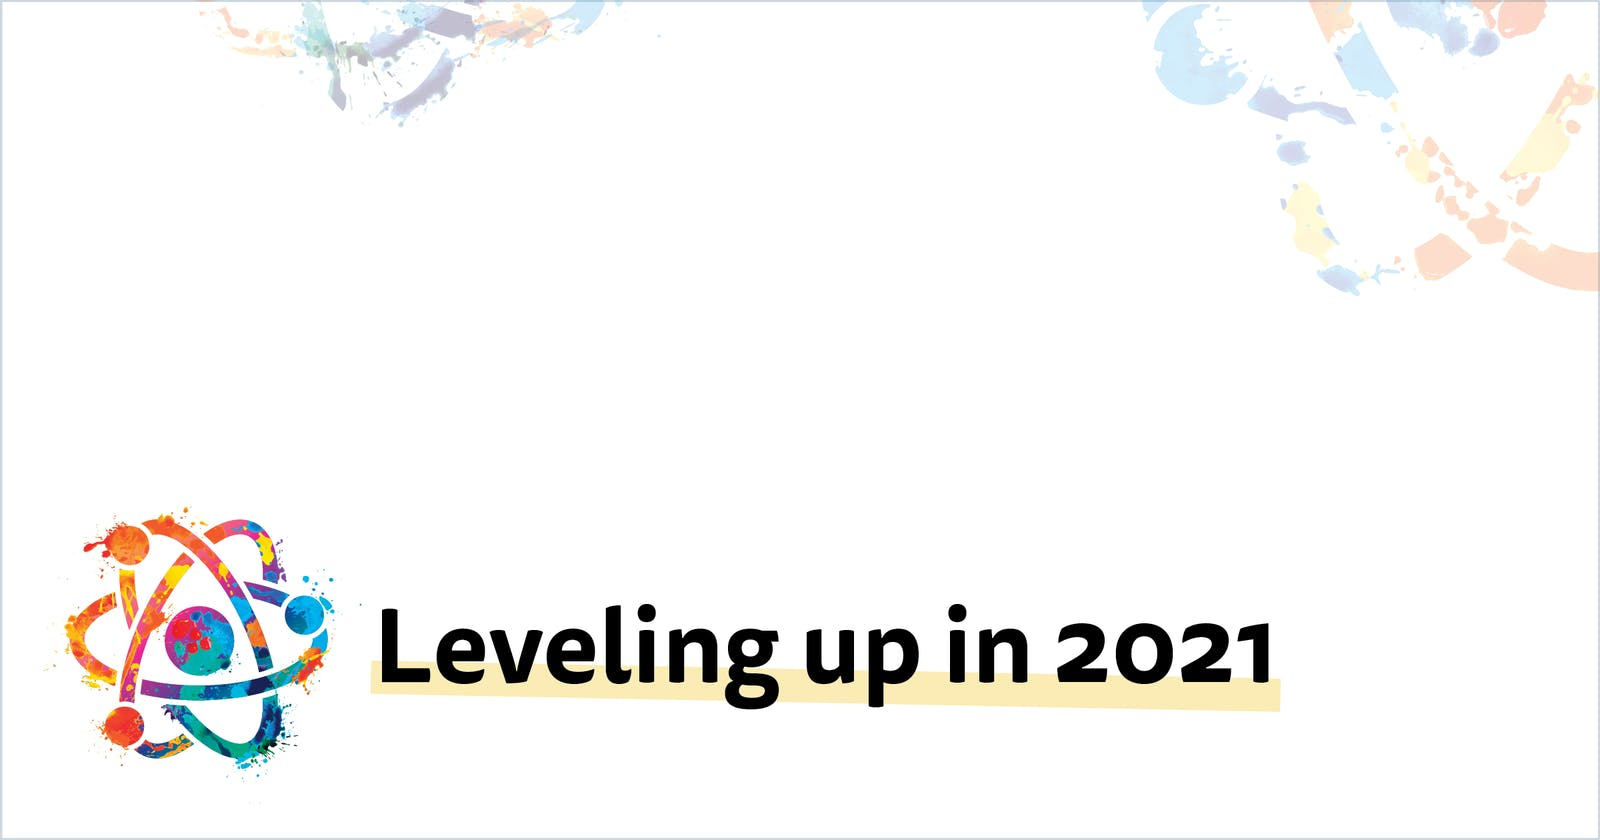 Leveling Up in 2021